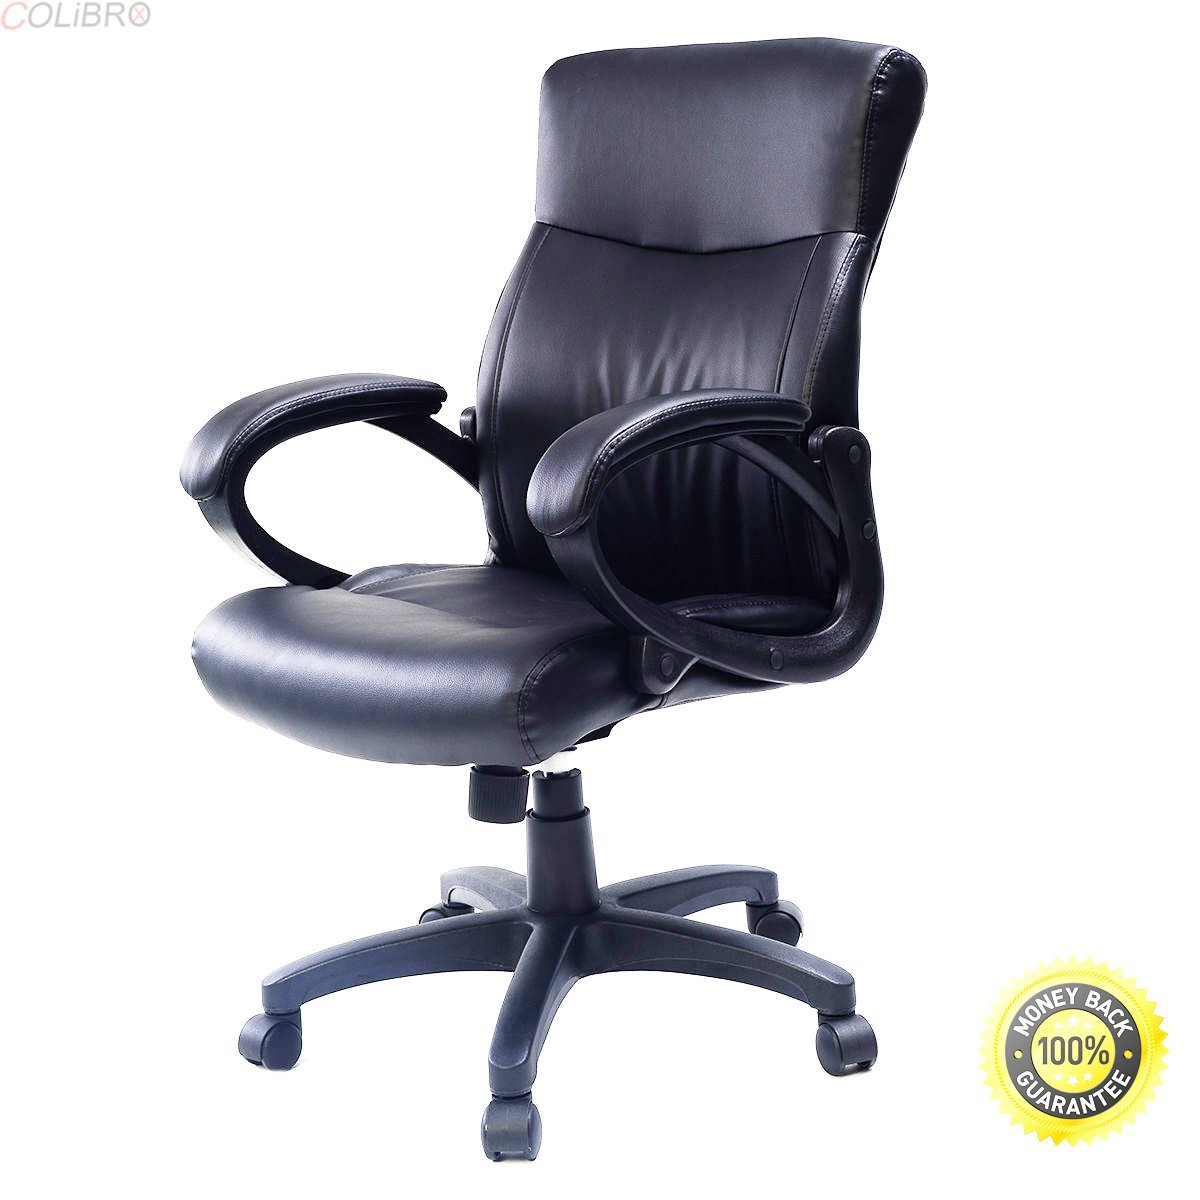 COLIBROX-- 2016 Style PU Leather Ergonomic Computer Desk Task Office Chair Black-Comfortable Arm Rests-New Modern Style-Solid construction